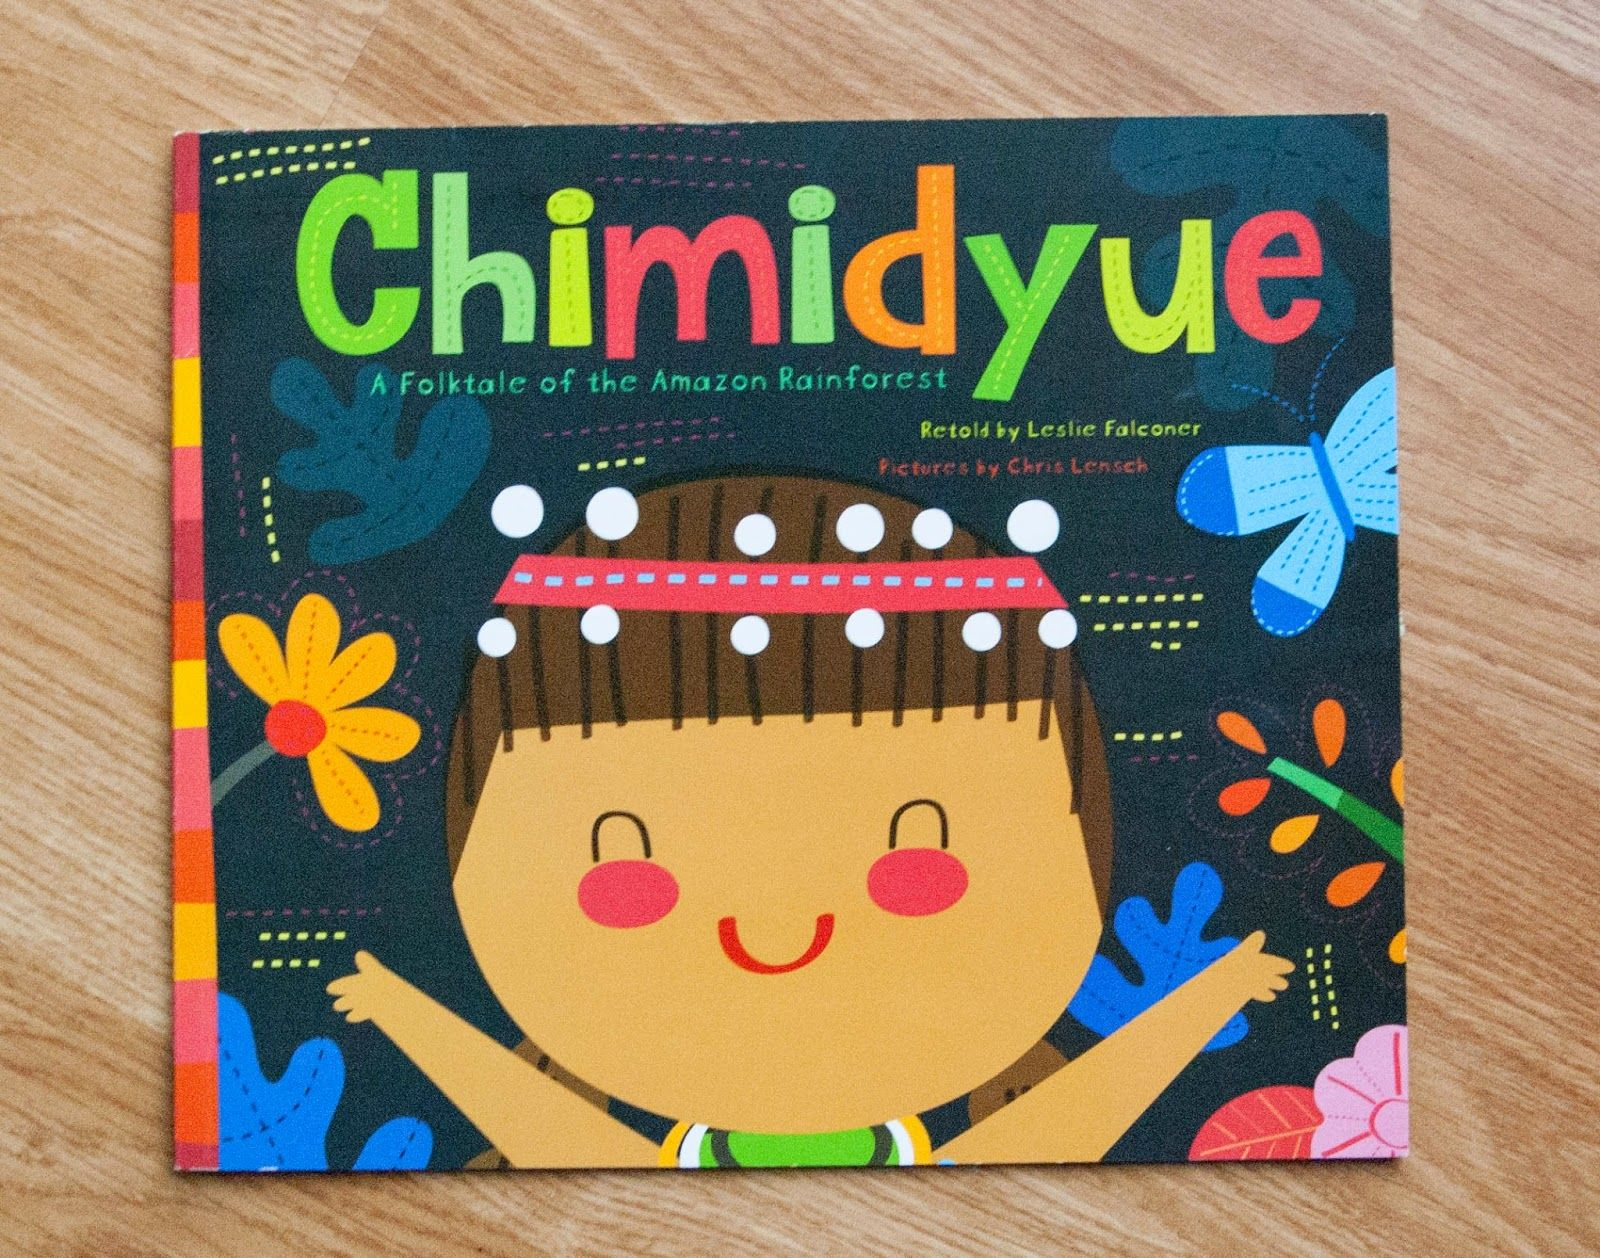 Image result for Chimidyue